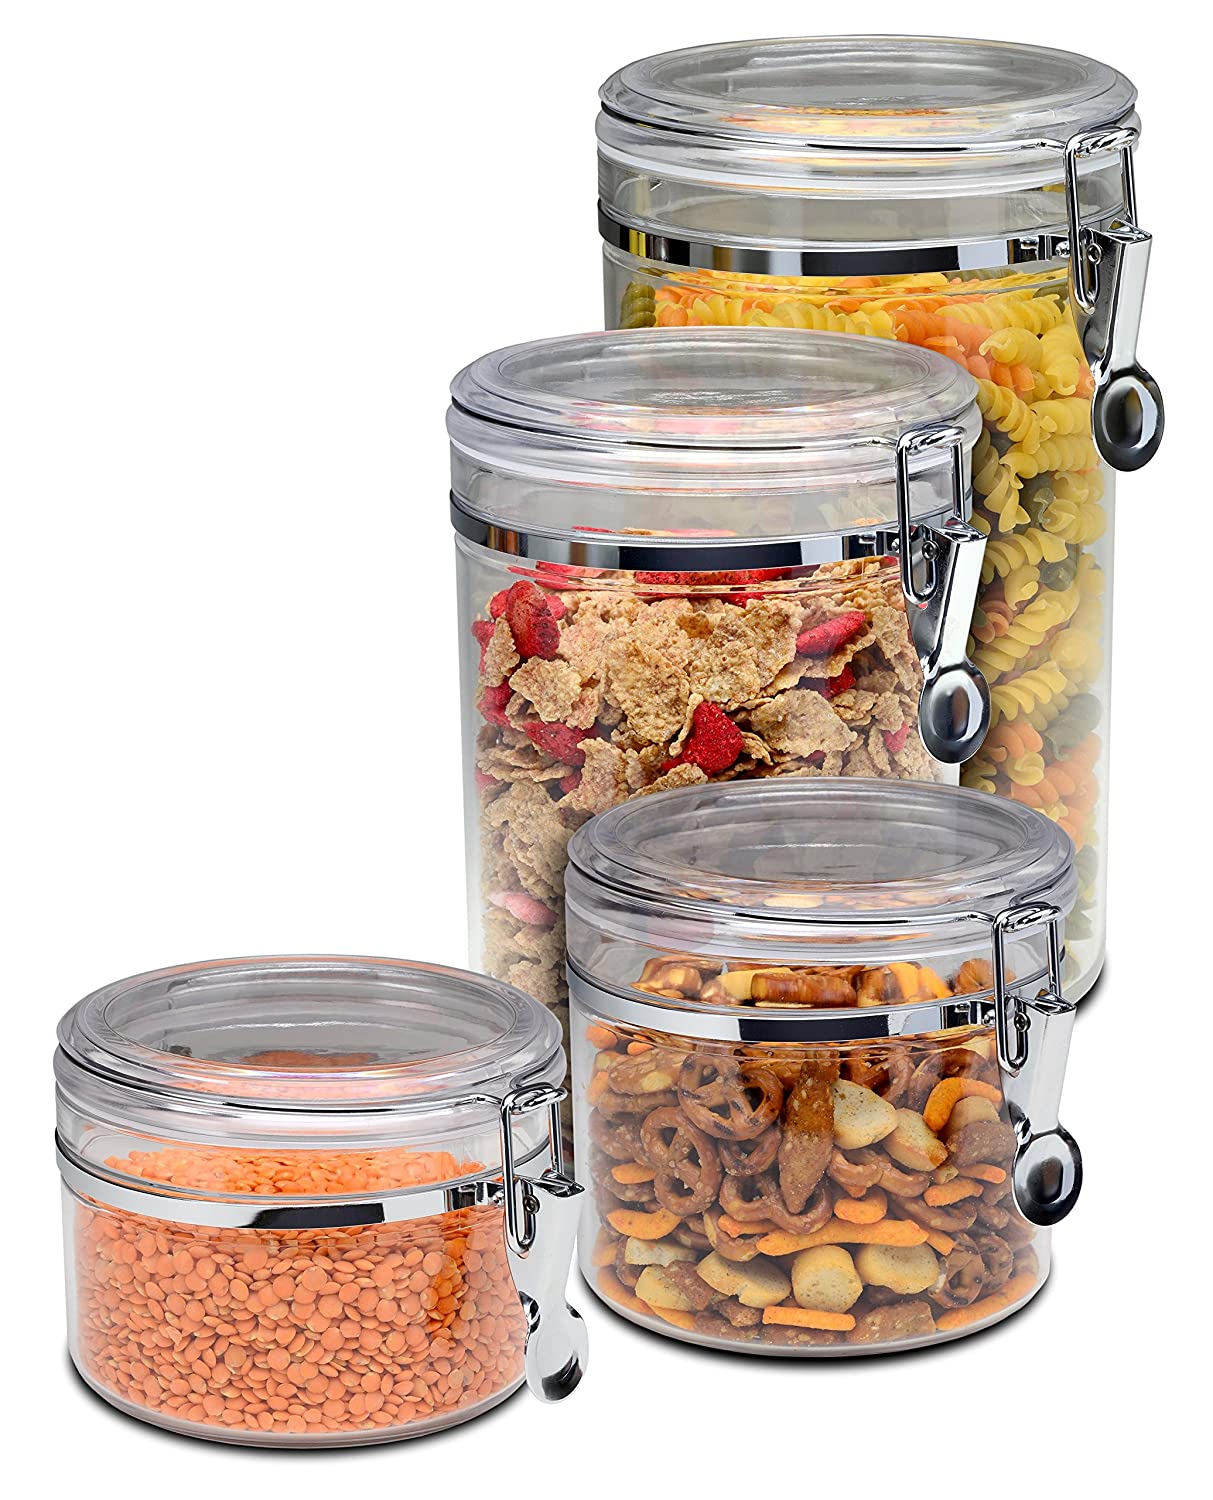 Acrylic Food Storage Containers Part - 38: Amazon.com: Bellemain 4 Piece Airtight Acrylic Canister Set , Food Storage  Container: Kitchen U0026 Dining